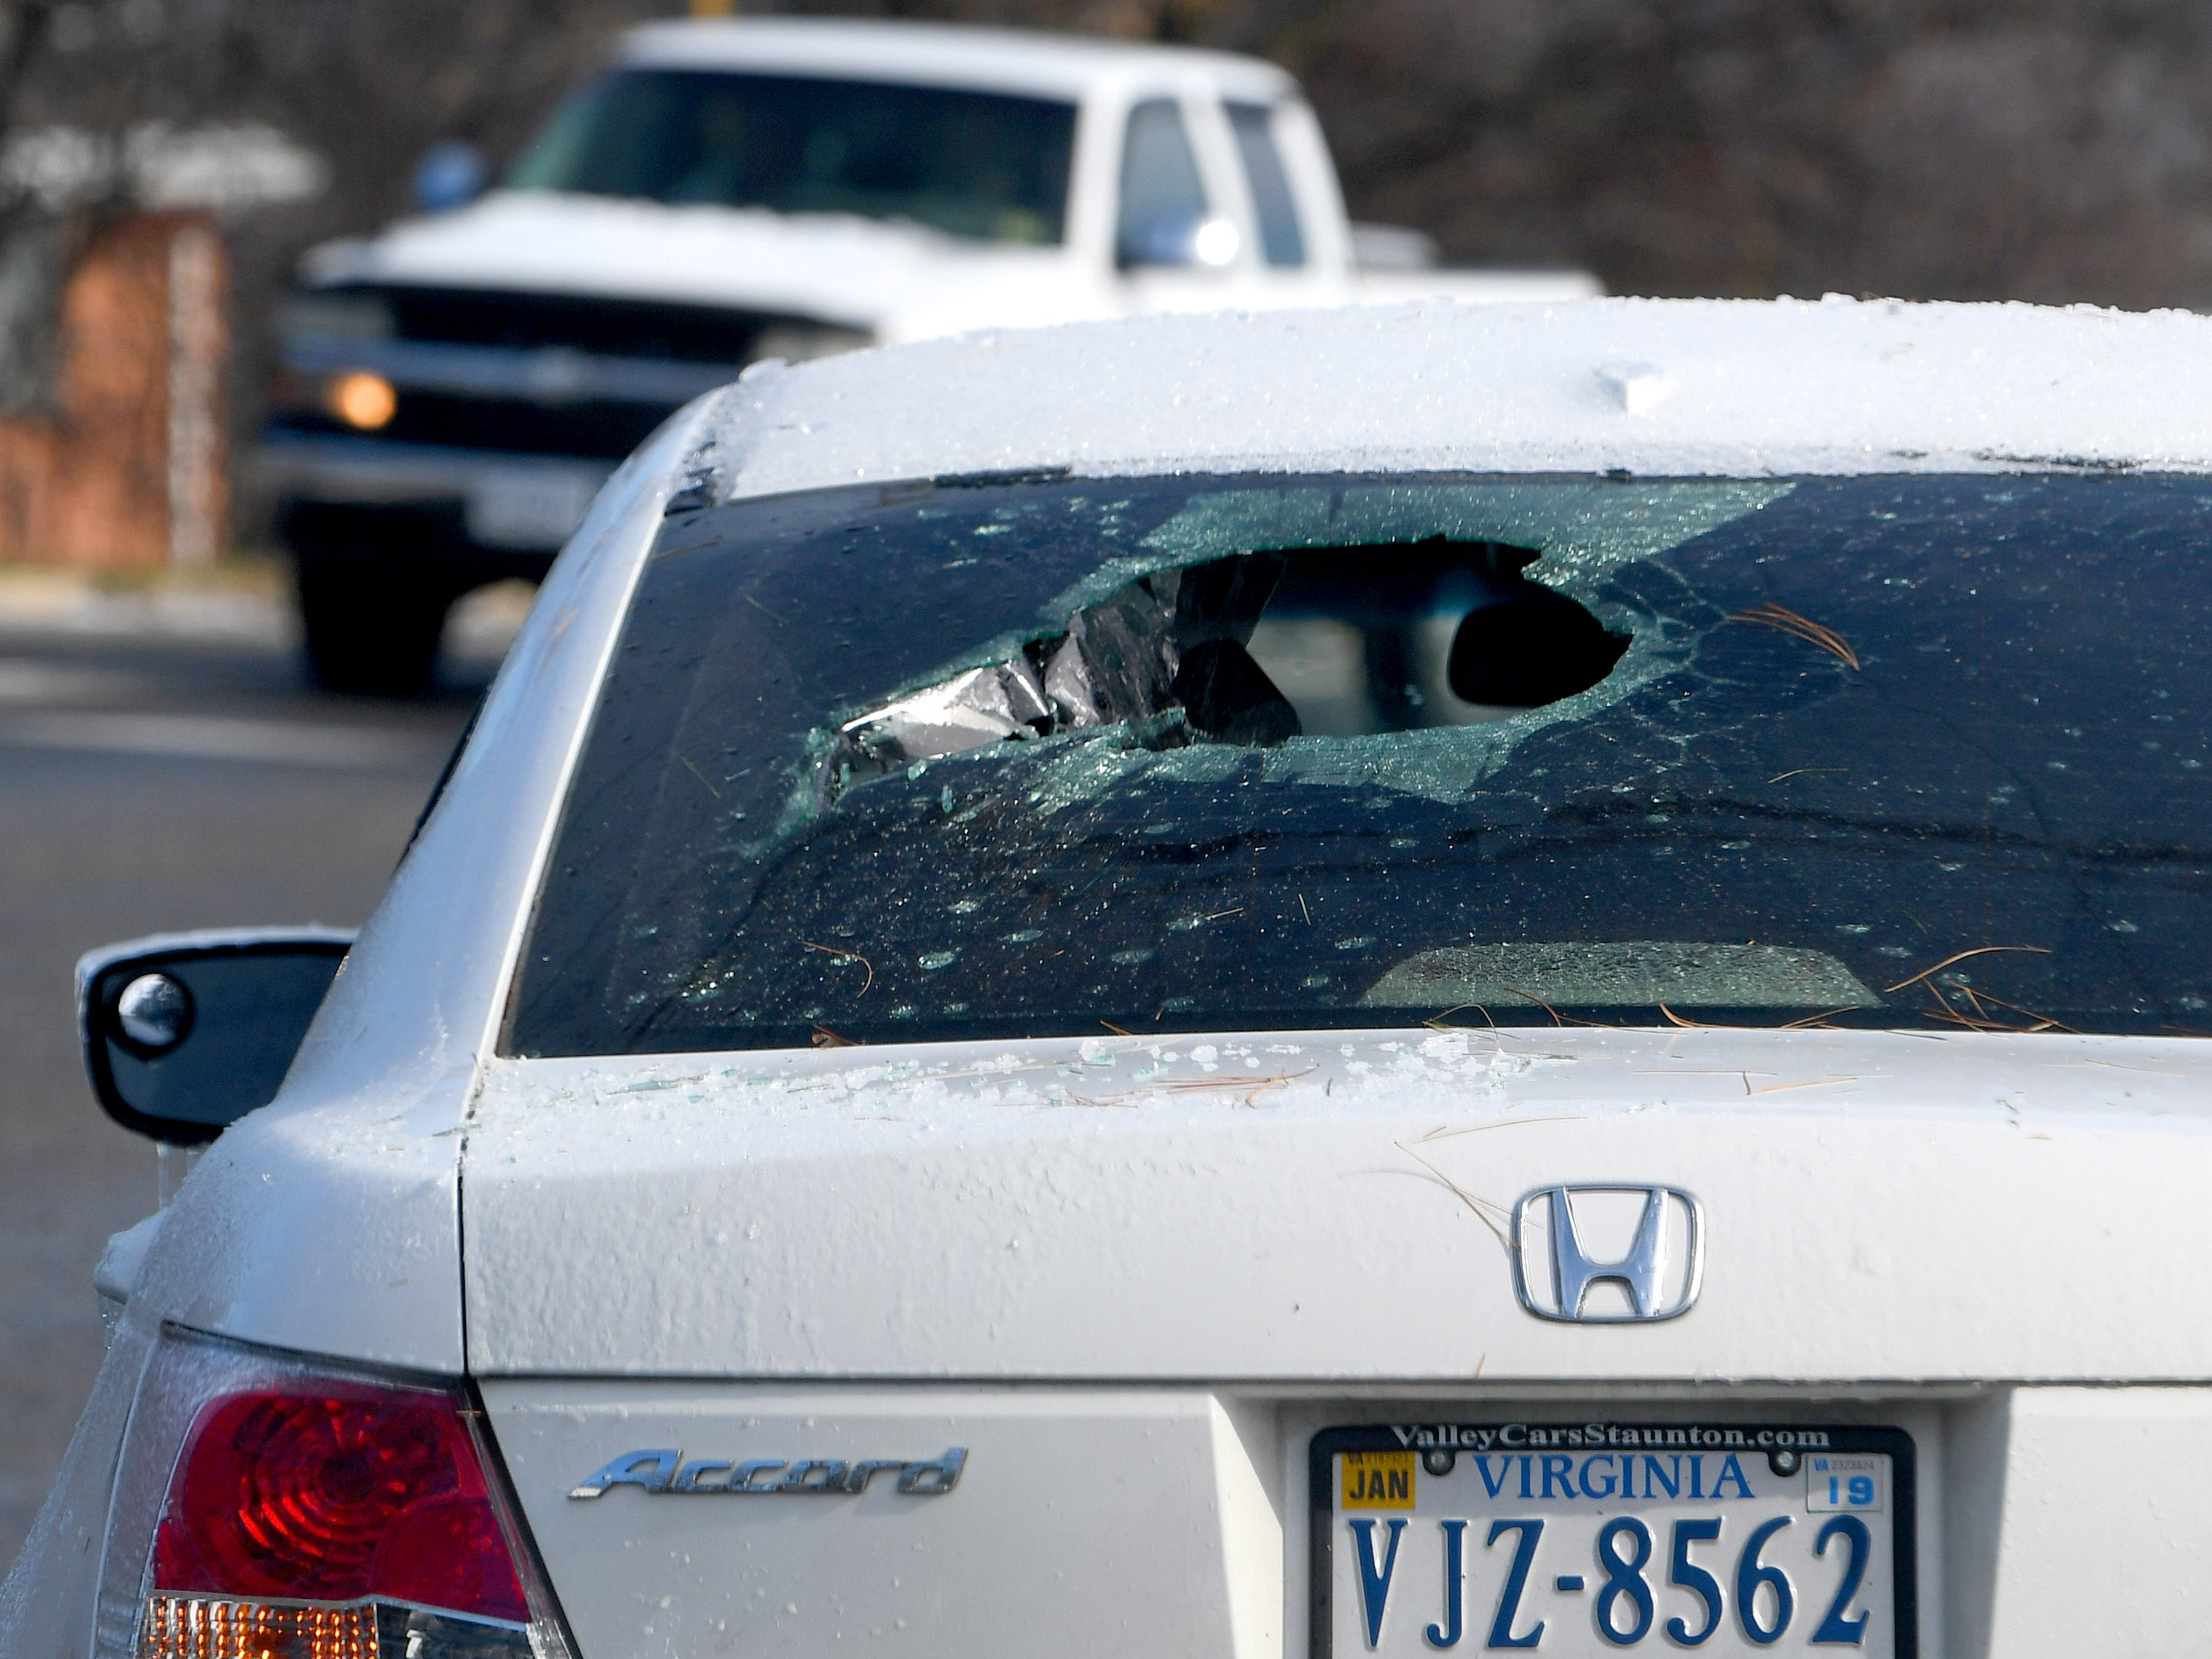 A car stopped at an intersection on Frontier Drive has a hole in the back window, possibly damage from a fallen limb, in the wake of an ice storm Friday, Nov. 16, 2018.